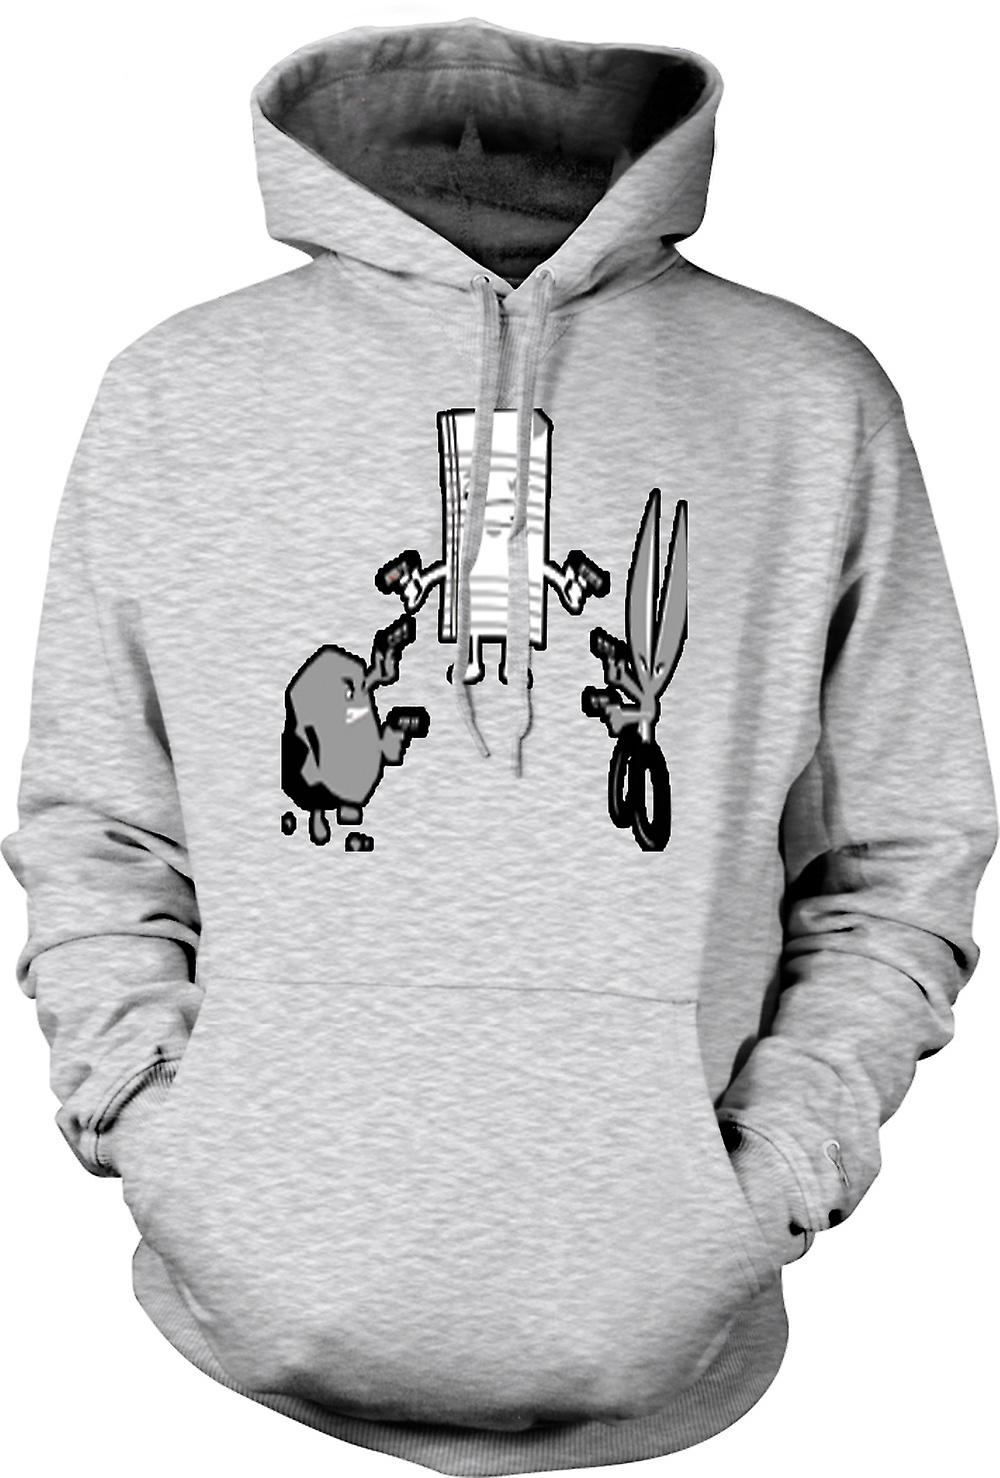 Mens Hoodie - Rock Paper Scissors Shoot - Out